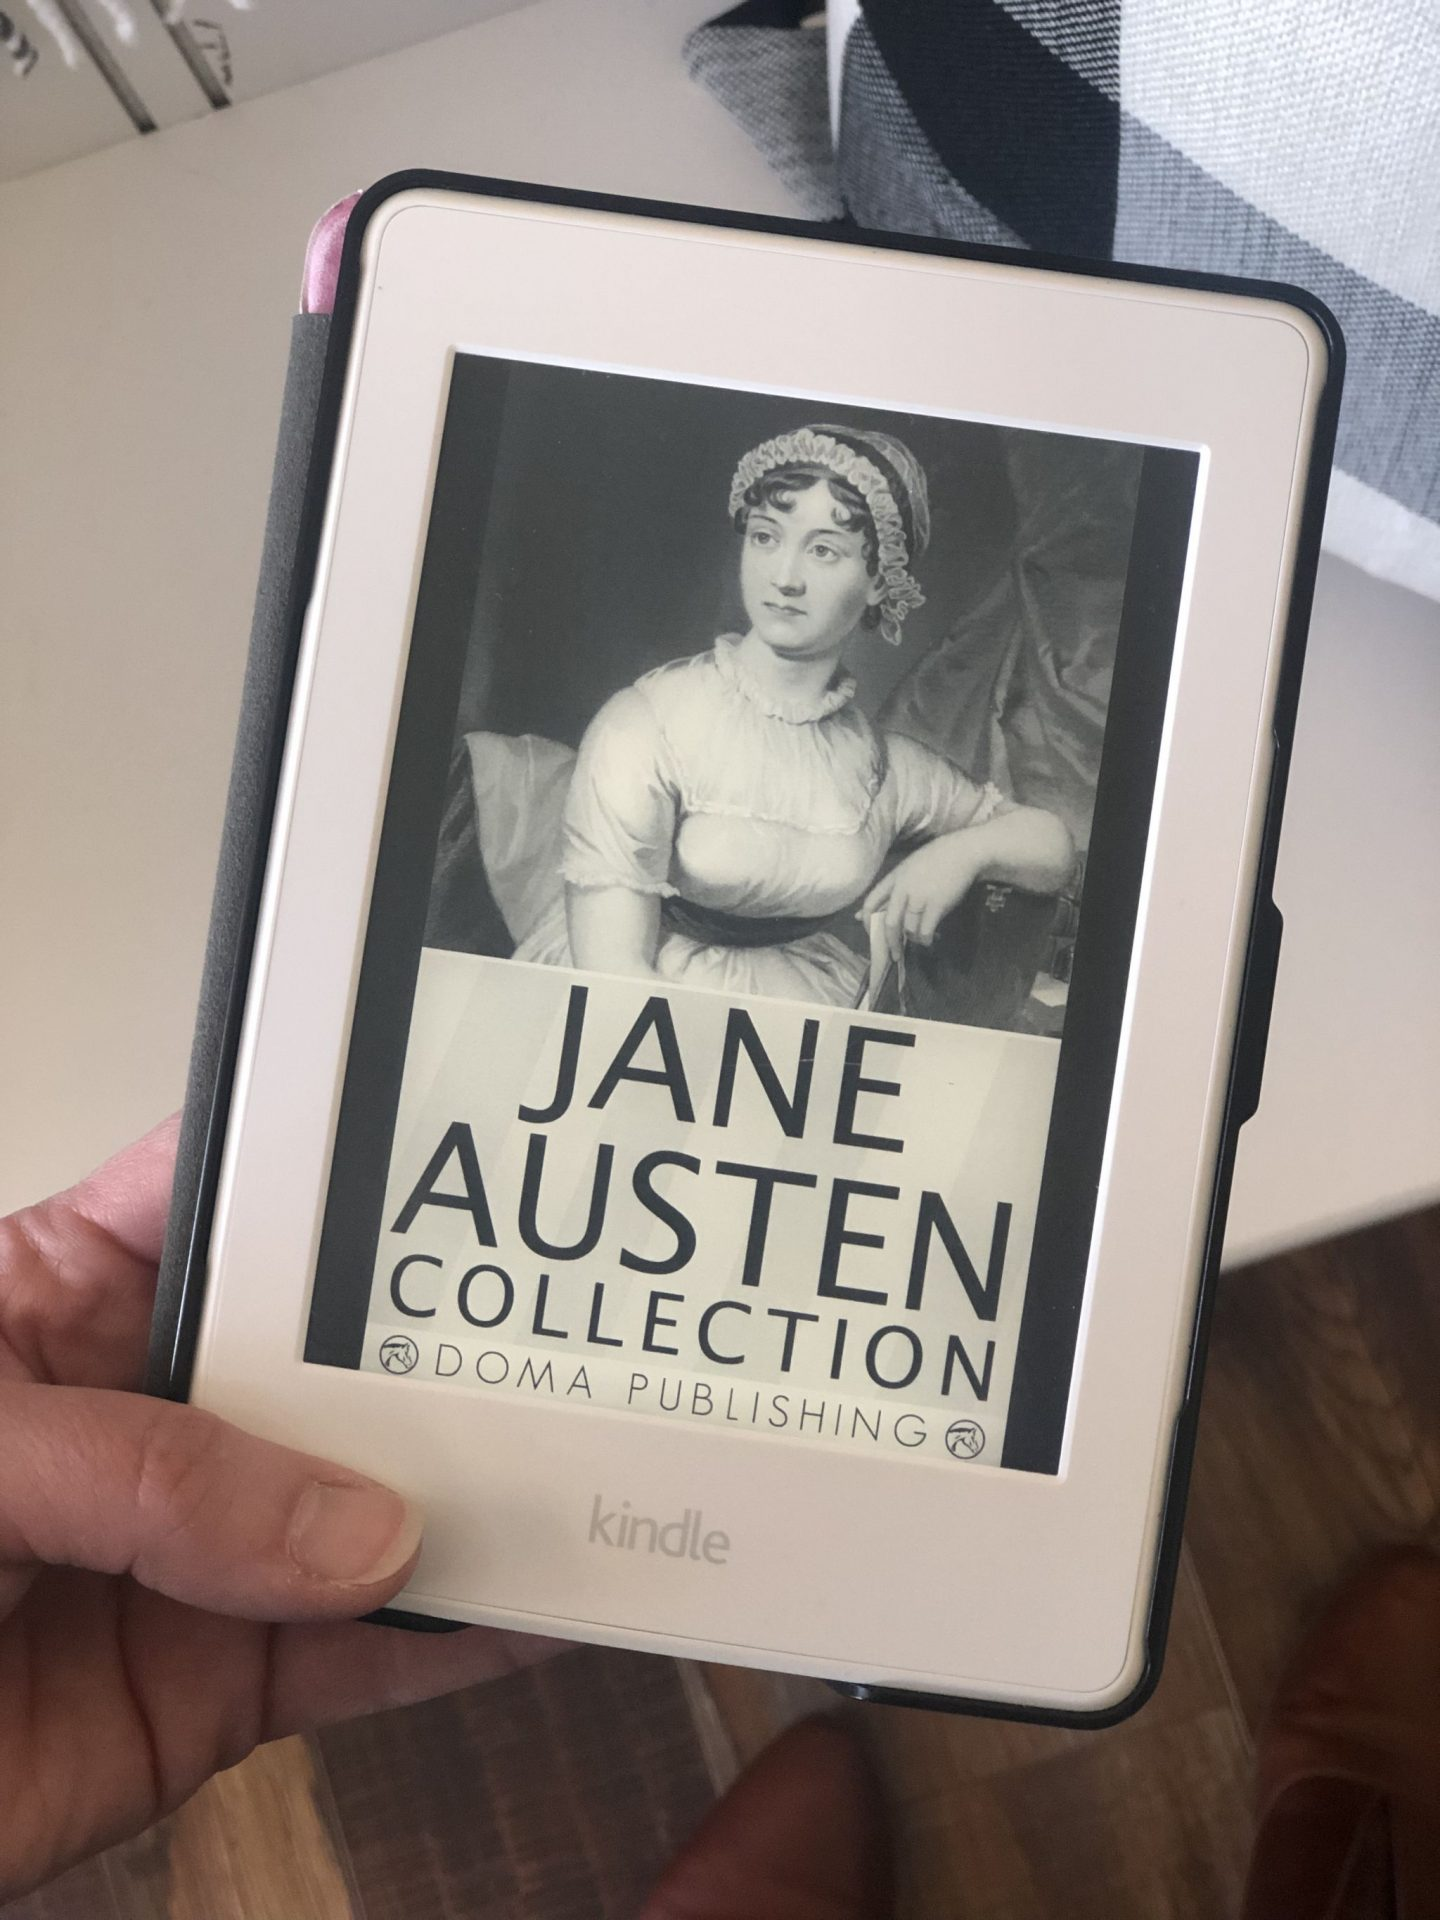 NC blogger Rebecca Lately made a goal to read all of Jane Austen's works in 2019. She's finished two and sharing her thoughts on soon to be third!